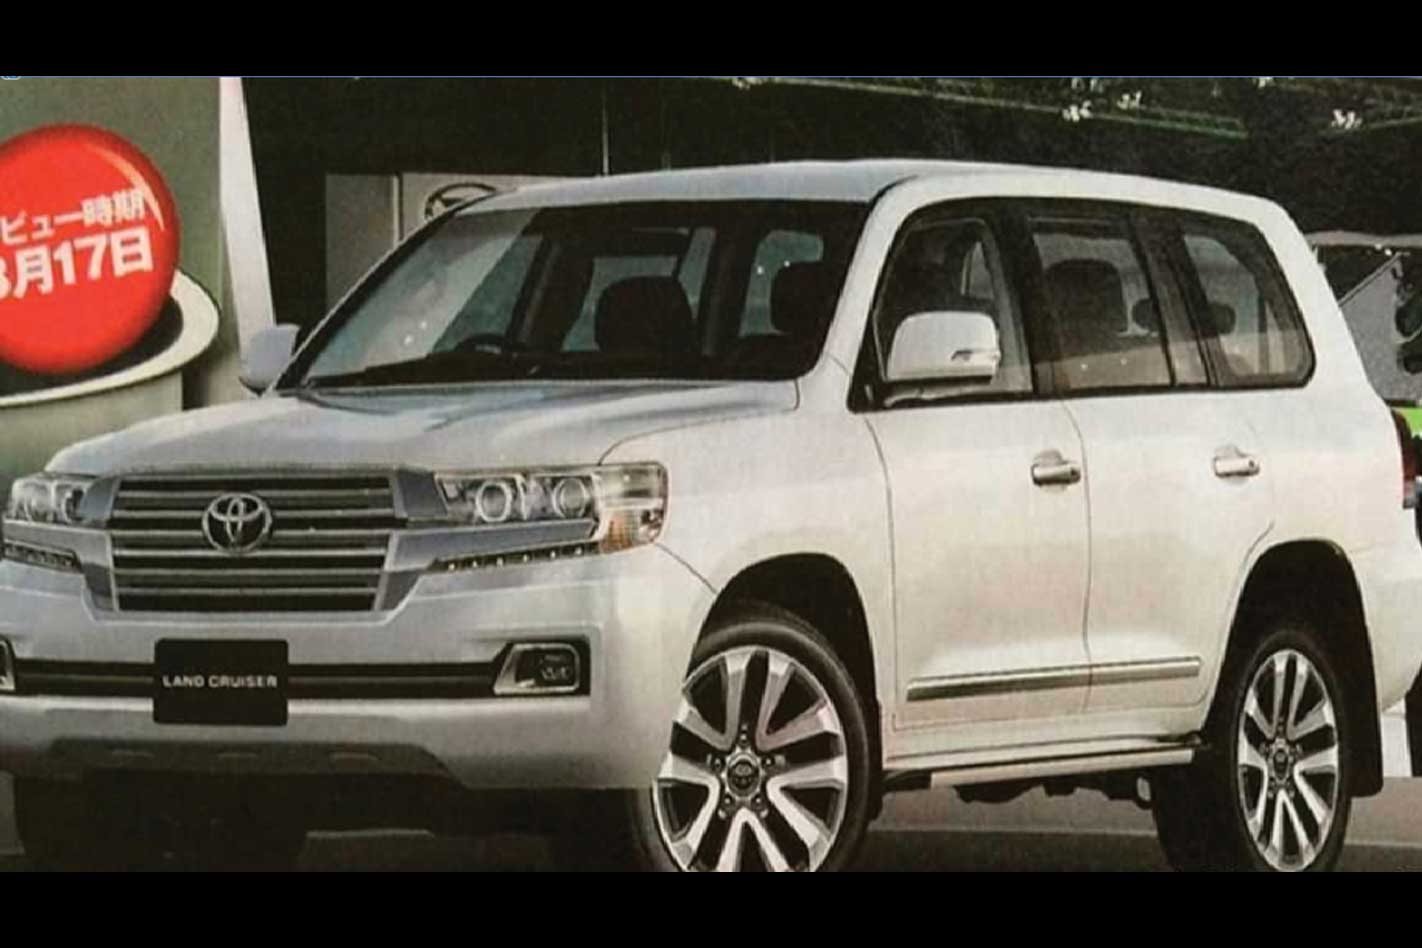 Upcoming Land Cruiser 300 Series likely to land diesel hybrid system